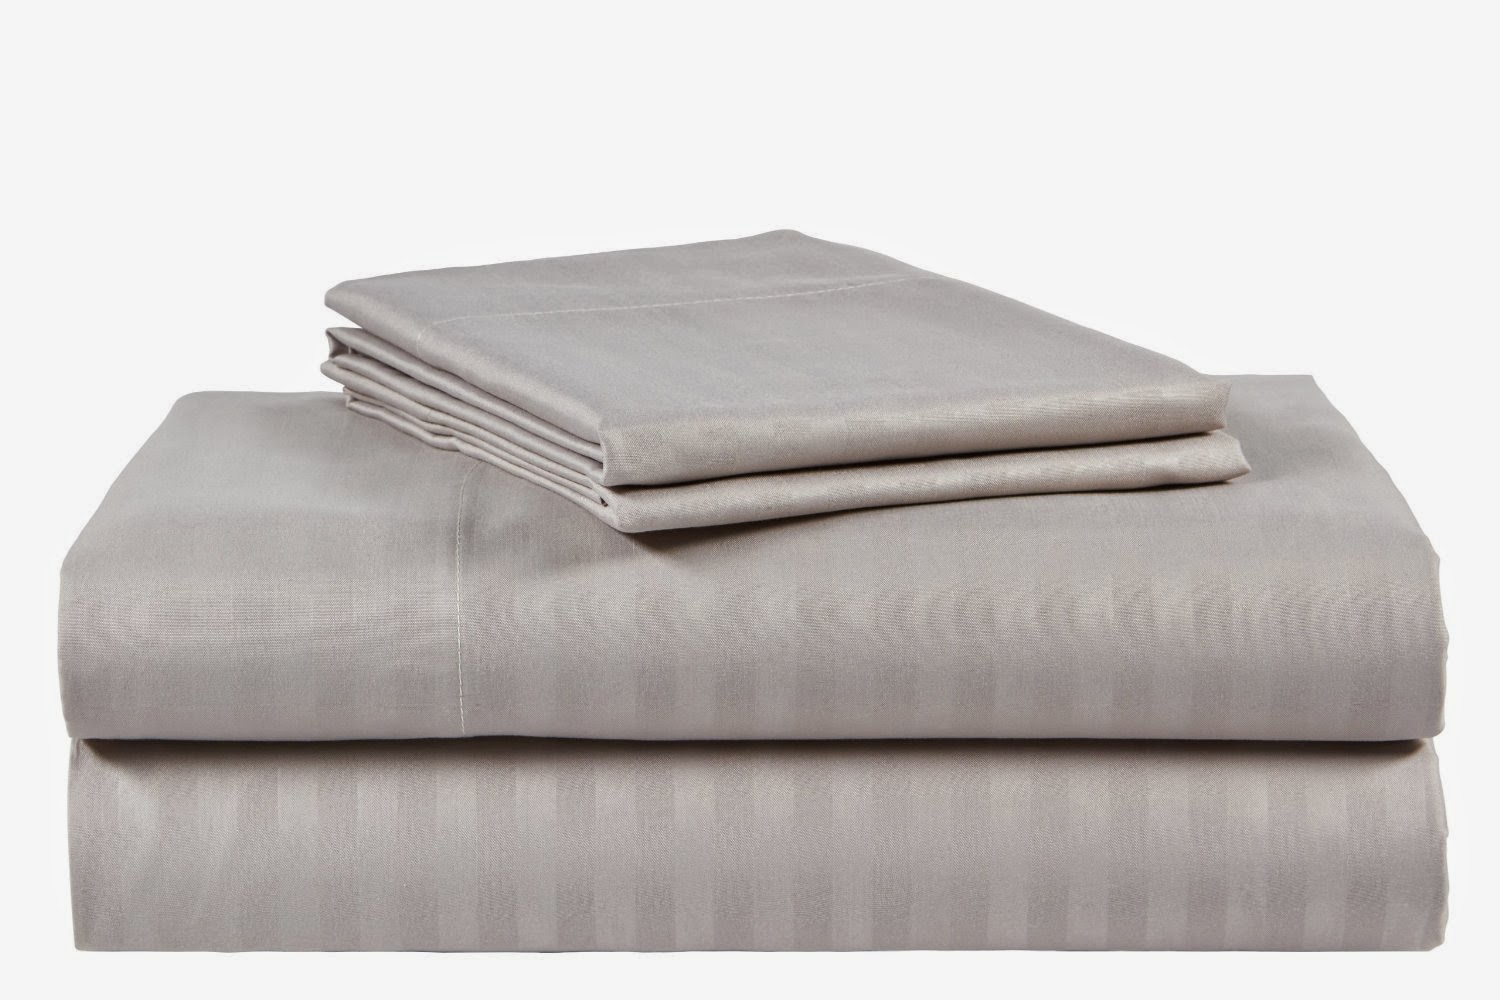 Egyptian Cotton Is A Particular Type Of Extra Long Staple Known Over The Entire World For Its Great Quality When Pulled From